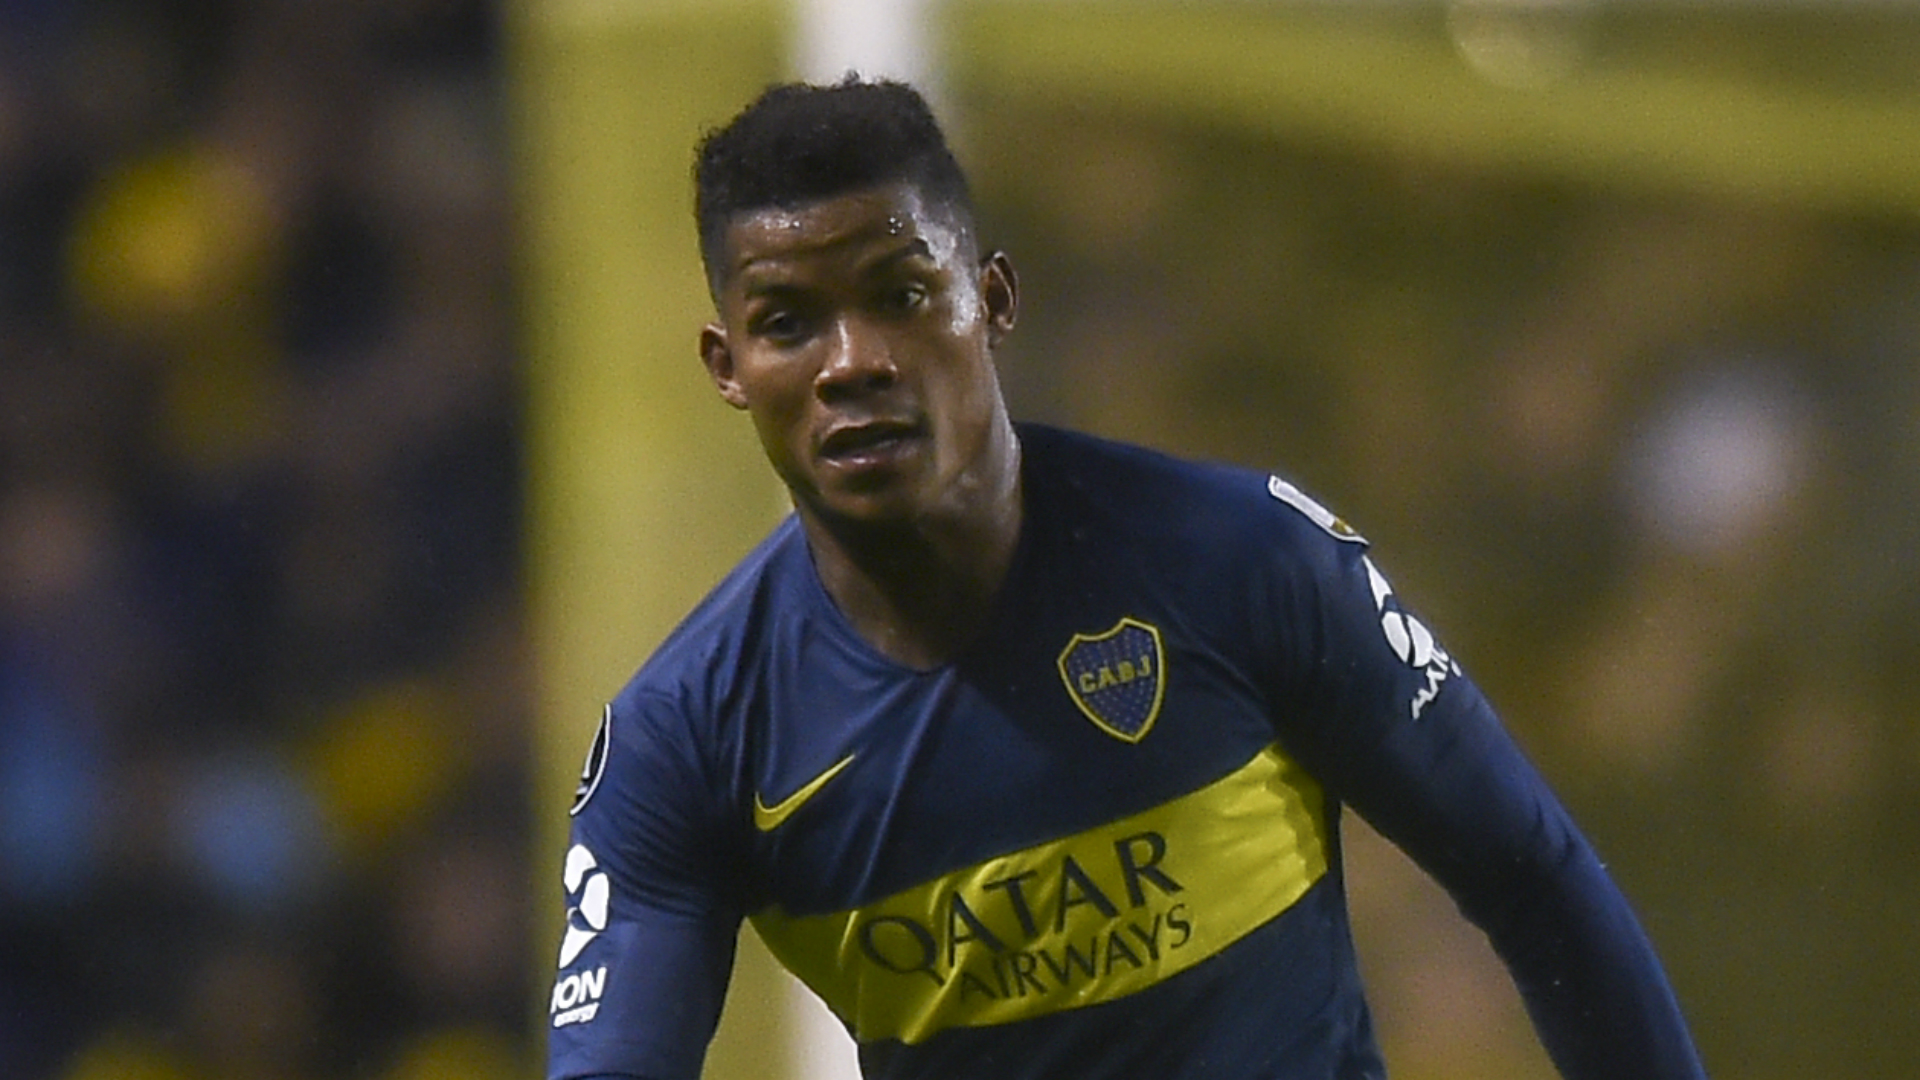 Zenit sign Boca's Barrios to replace Paredes